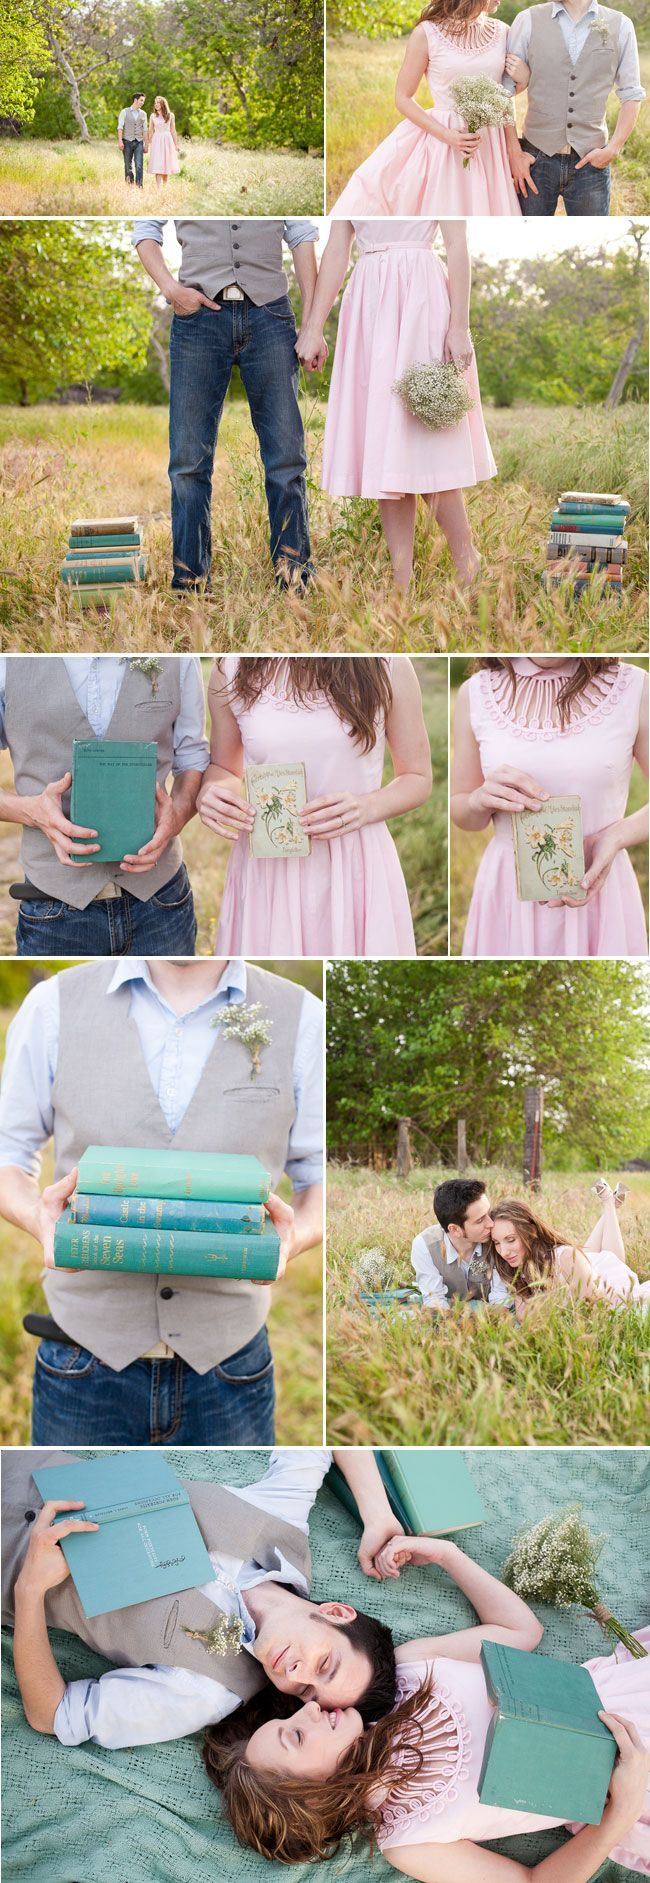 Okay, release the inner fangirl. I seriously would like a book-themed wedding!! :D